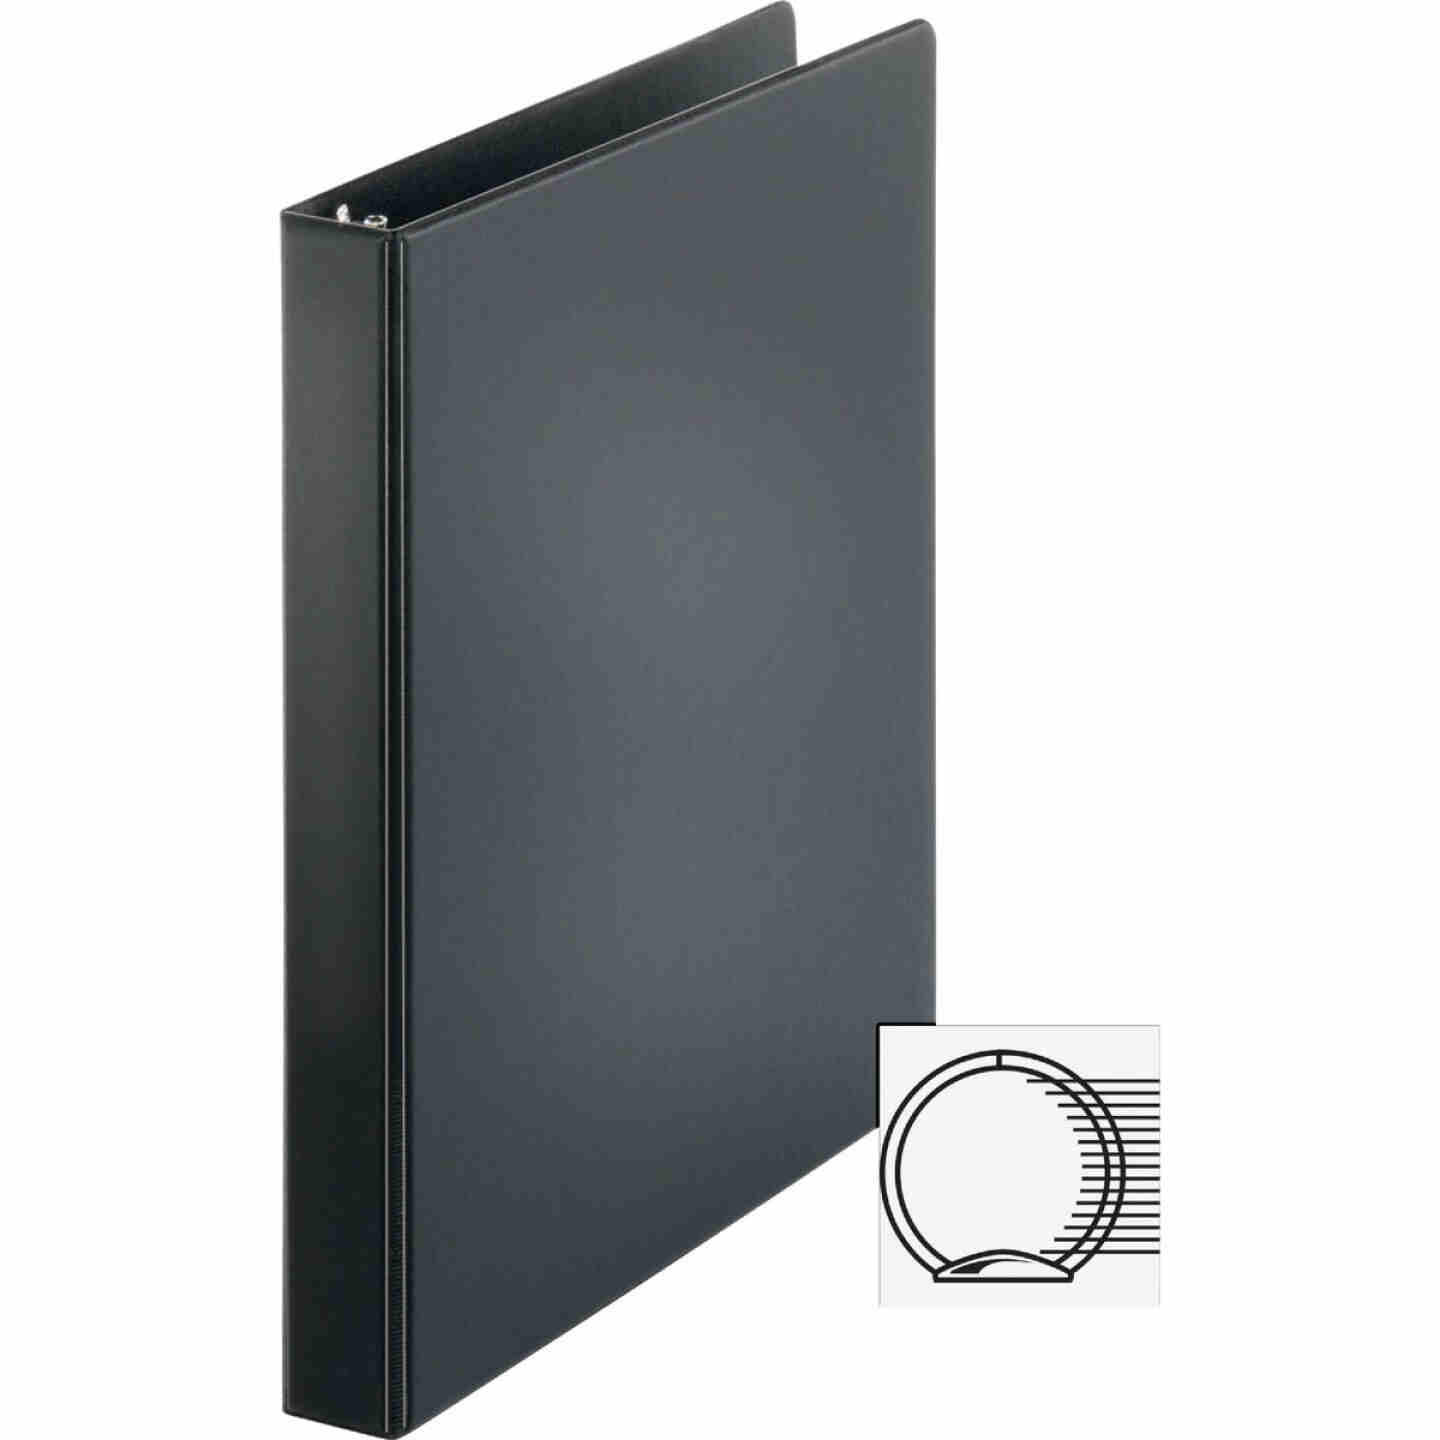 Business Source 1 In. Black 3-Ring Binder Image 1